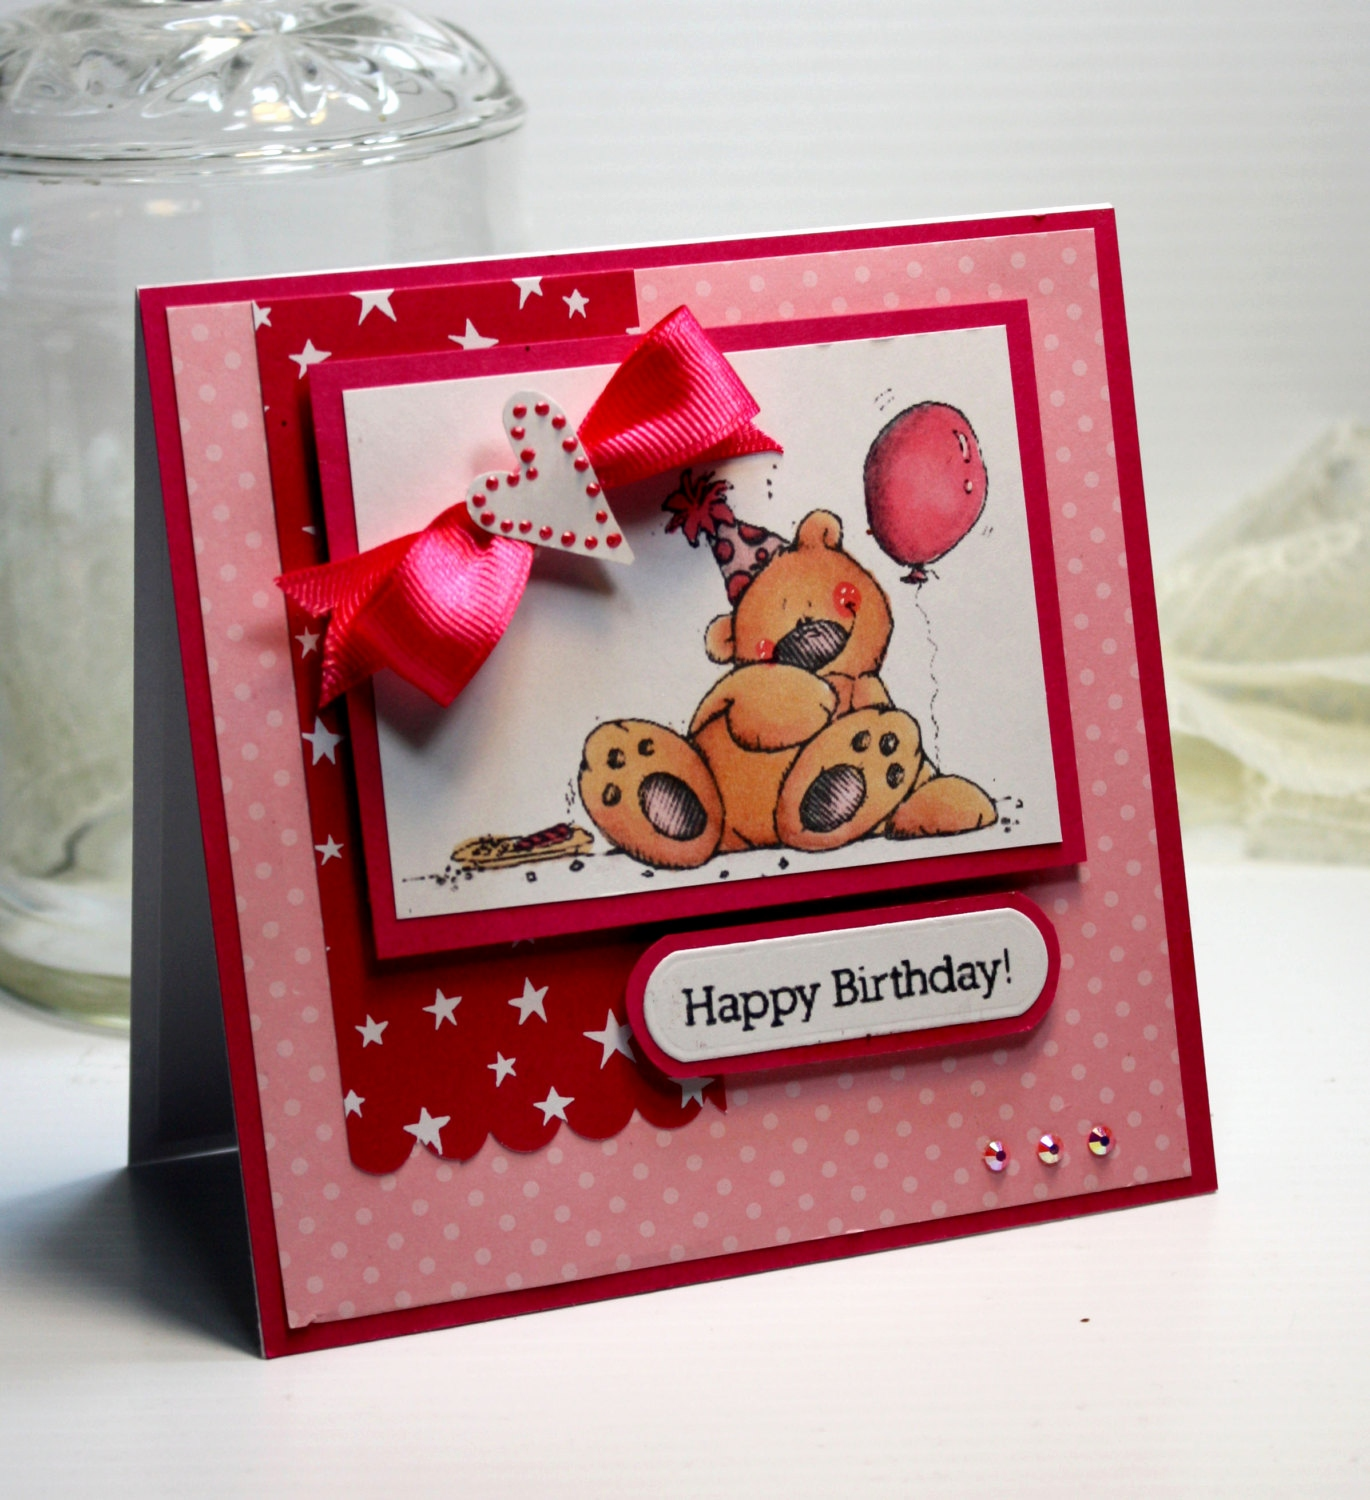 3d greeting card ideas for birthday ; happy-birthday-handmade-cards-lovely-birthday-card-handmade-birthday-greeting-card-3d-card-happy-of-happy-birthday-handmade-cards